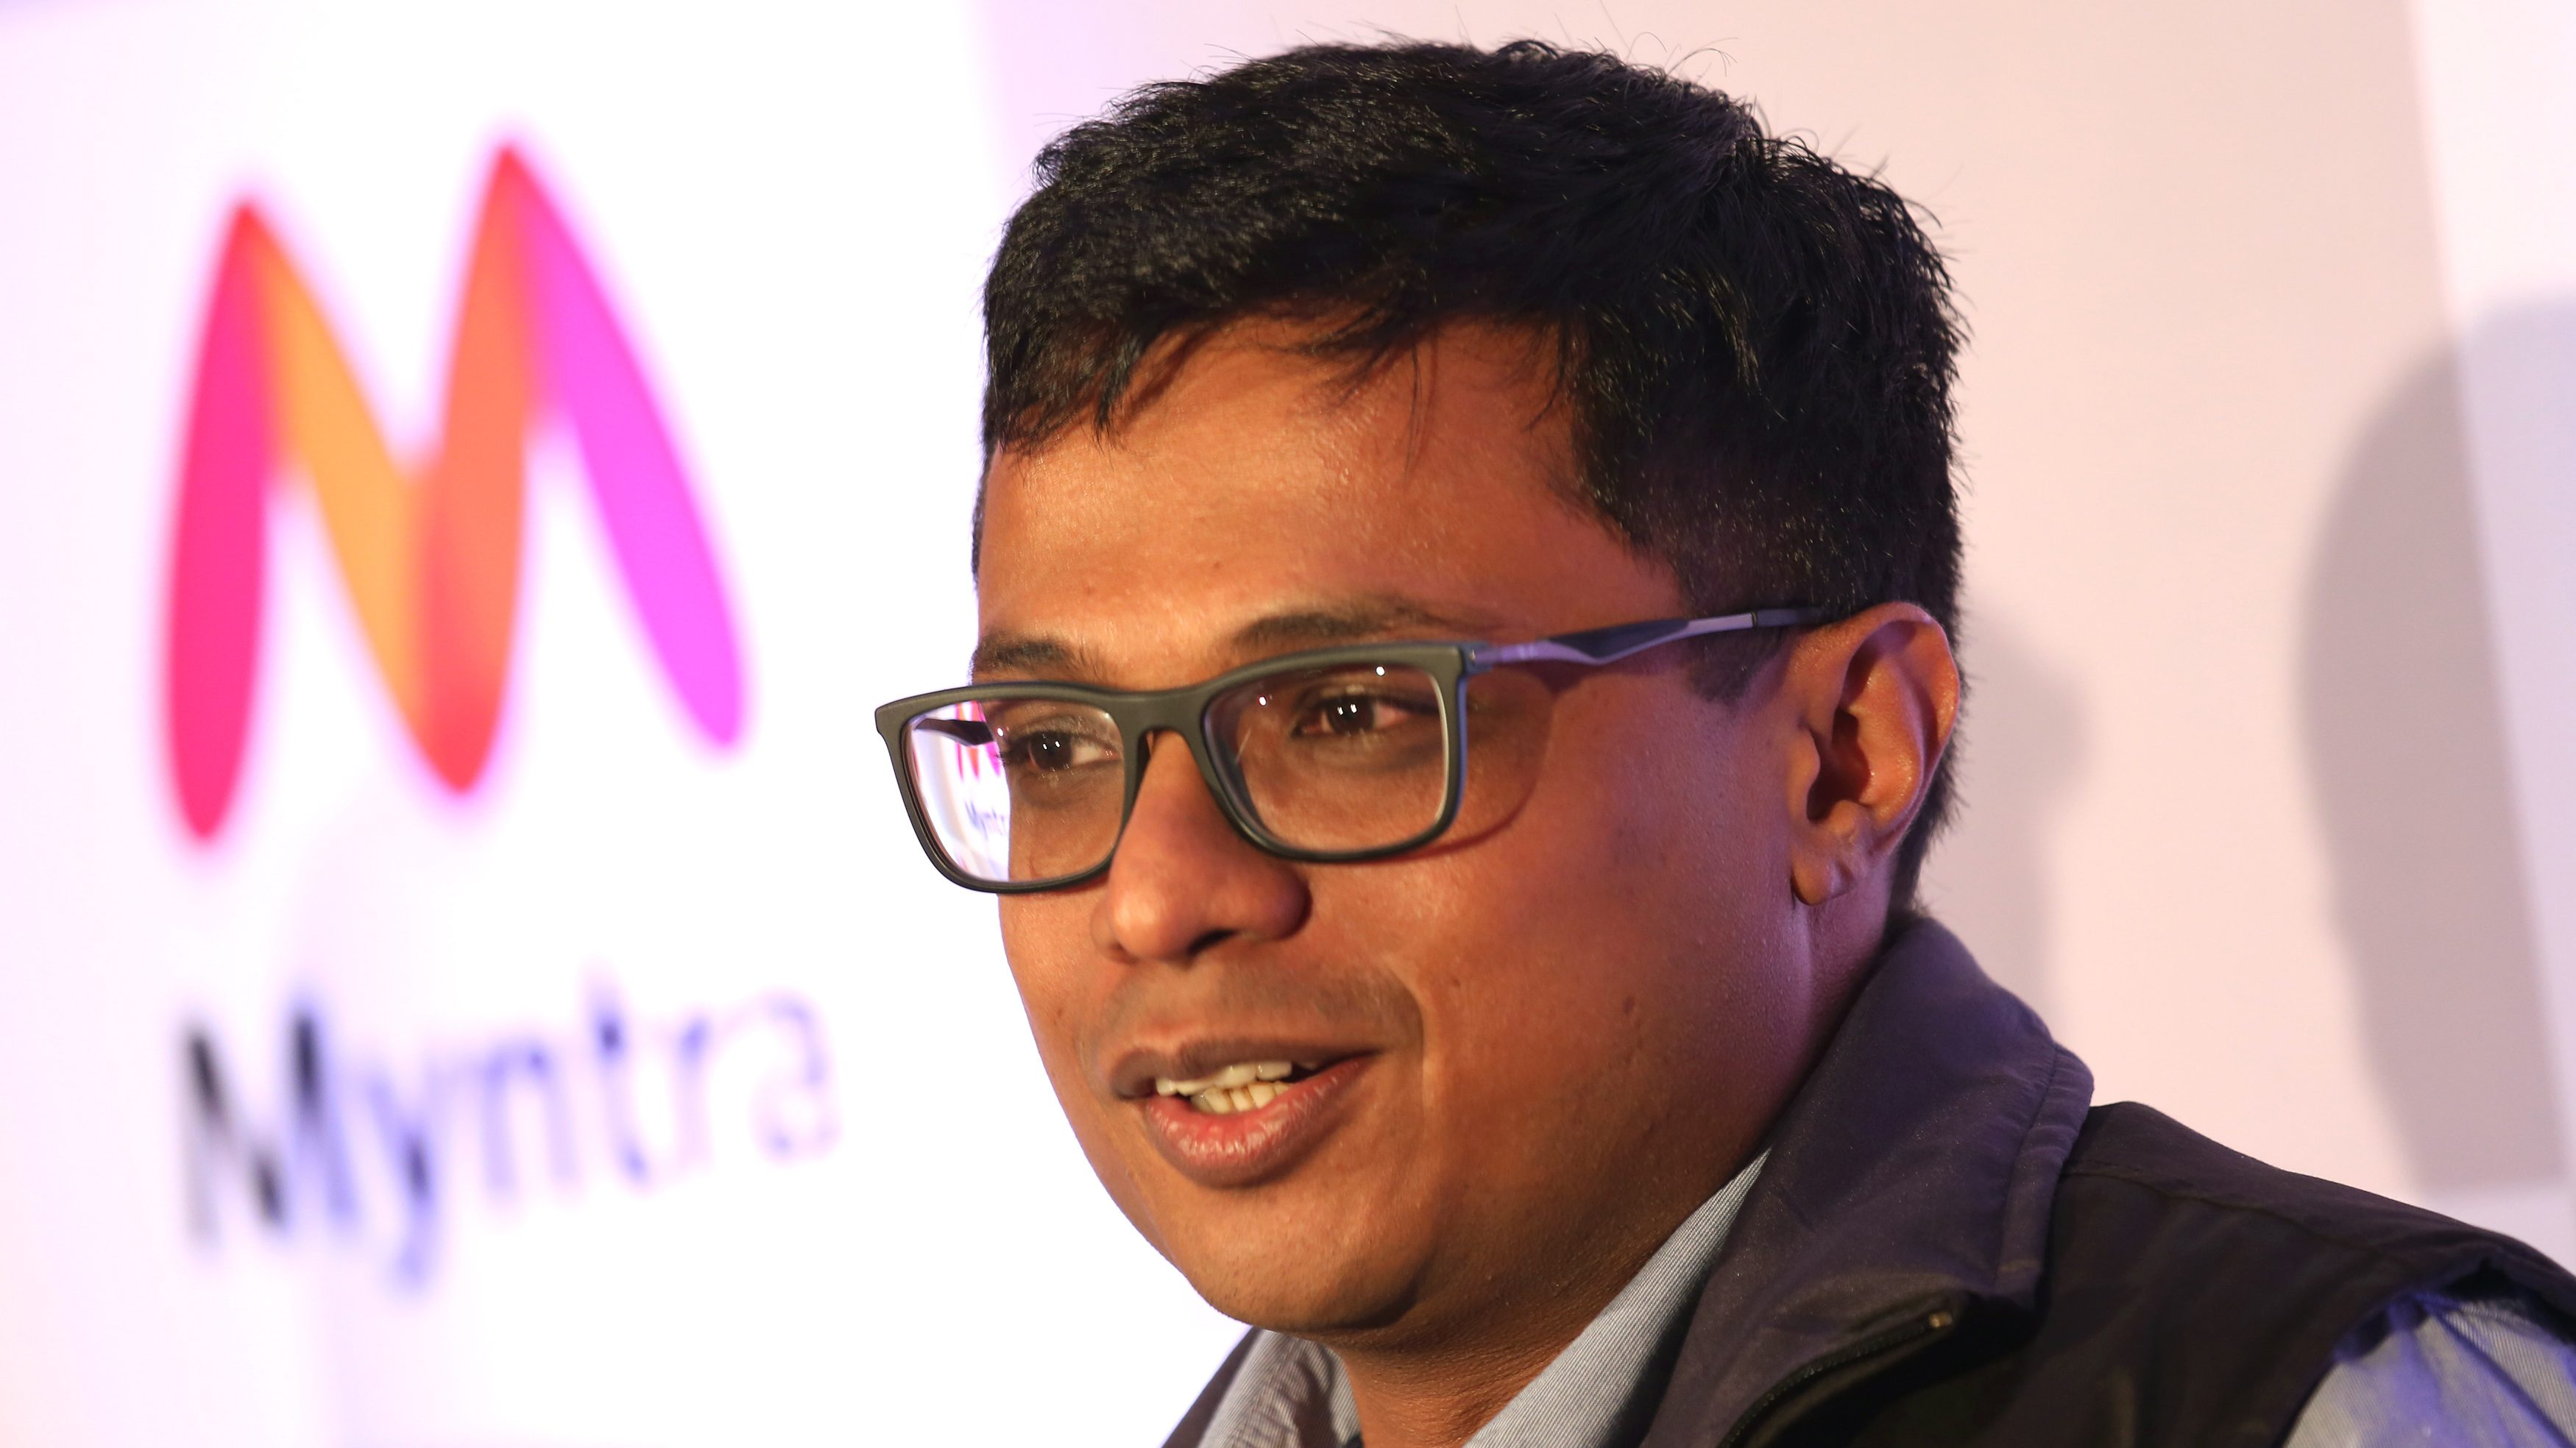 epa04744458 Flipkart CEO Sachin Bansal addresses a news conference in Bangalore, India, 12 May 2015. India?s e-commerce giants Flipkart and largest online fashion retailer Myntra will become a mobile app-only shopping platform starting 15 May, which intended to accelerate a consumer shift towards using smartphones to shop online, save cost and reduce dependence. The number of mobile Internet users in India is expected to reach 213 million by June, according to a 2014 report and it will be approximately 480 million mobile Internet users by end of 2017.  EPA/JAGADEESH NV